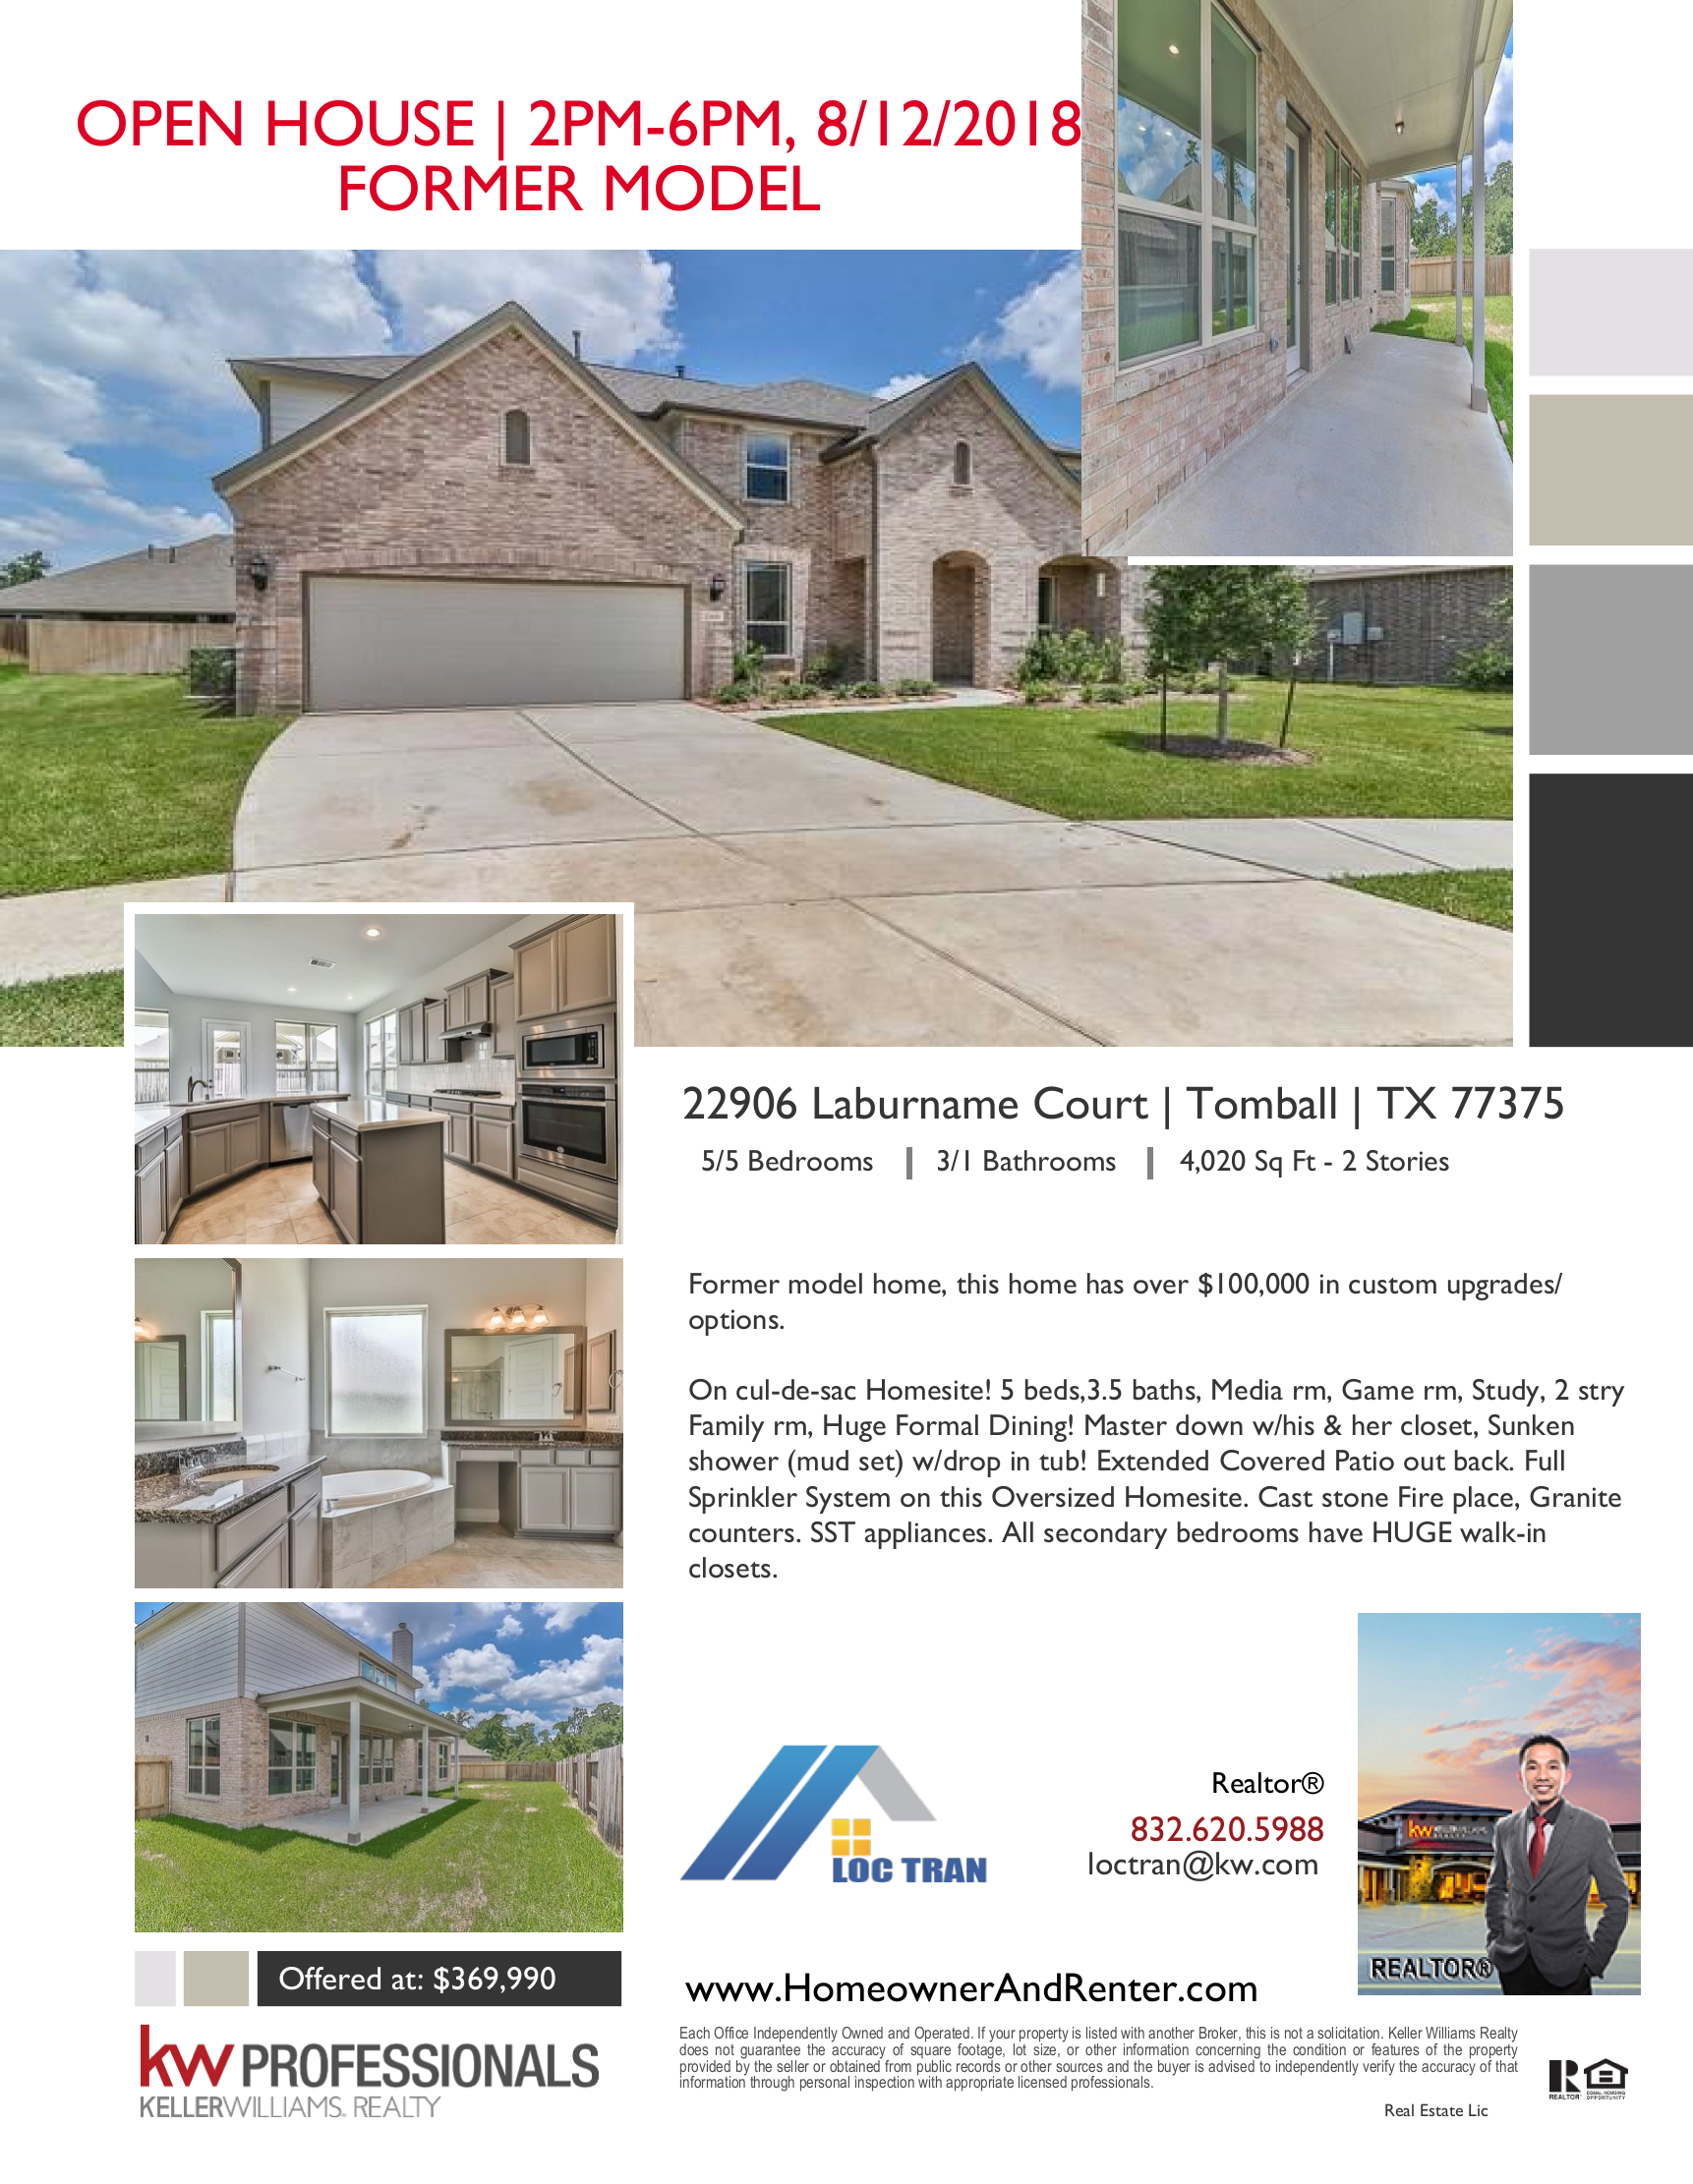 open house in tomball from 2 6 this sunday 8 12 former model home